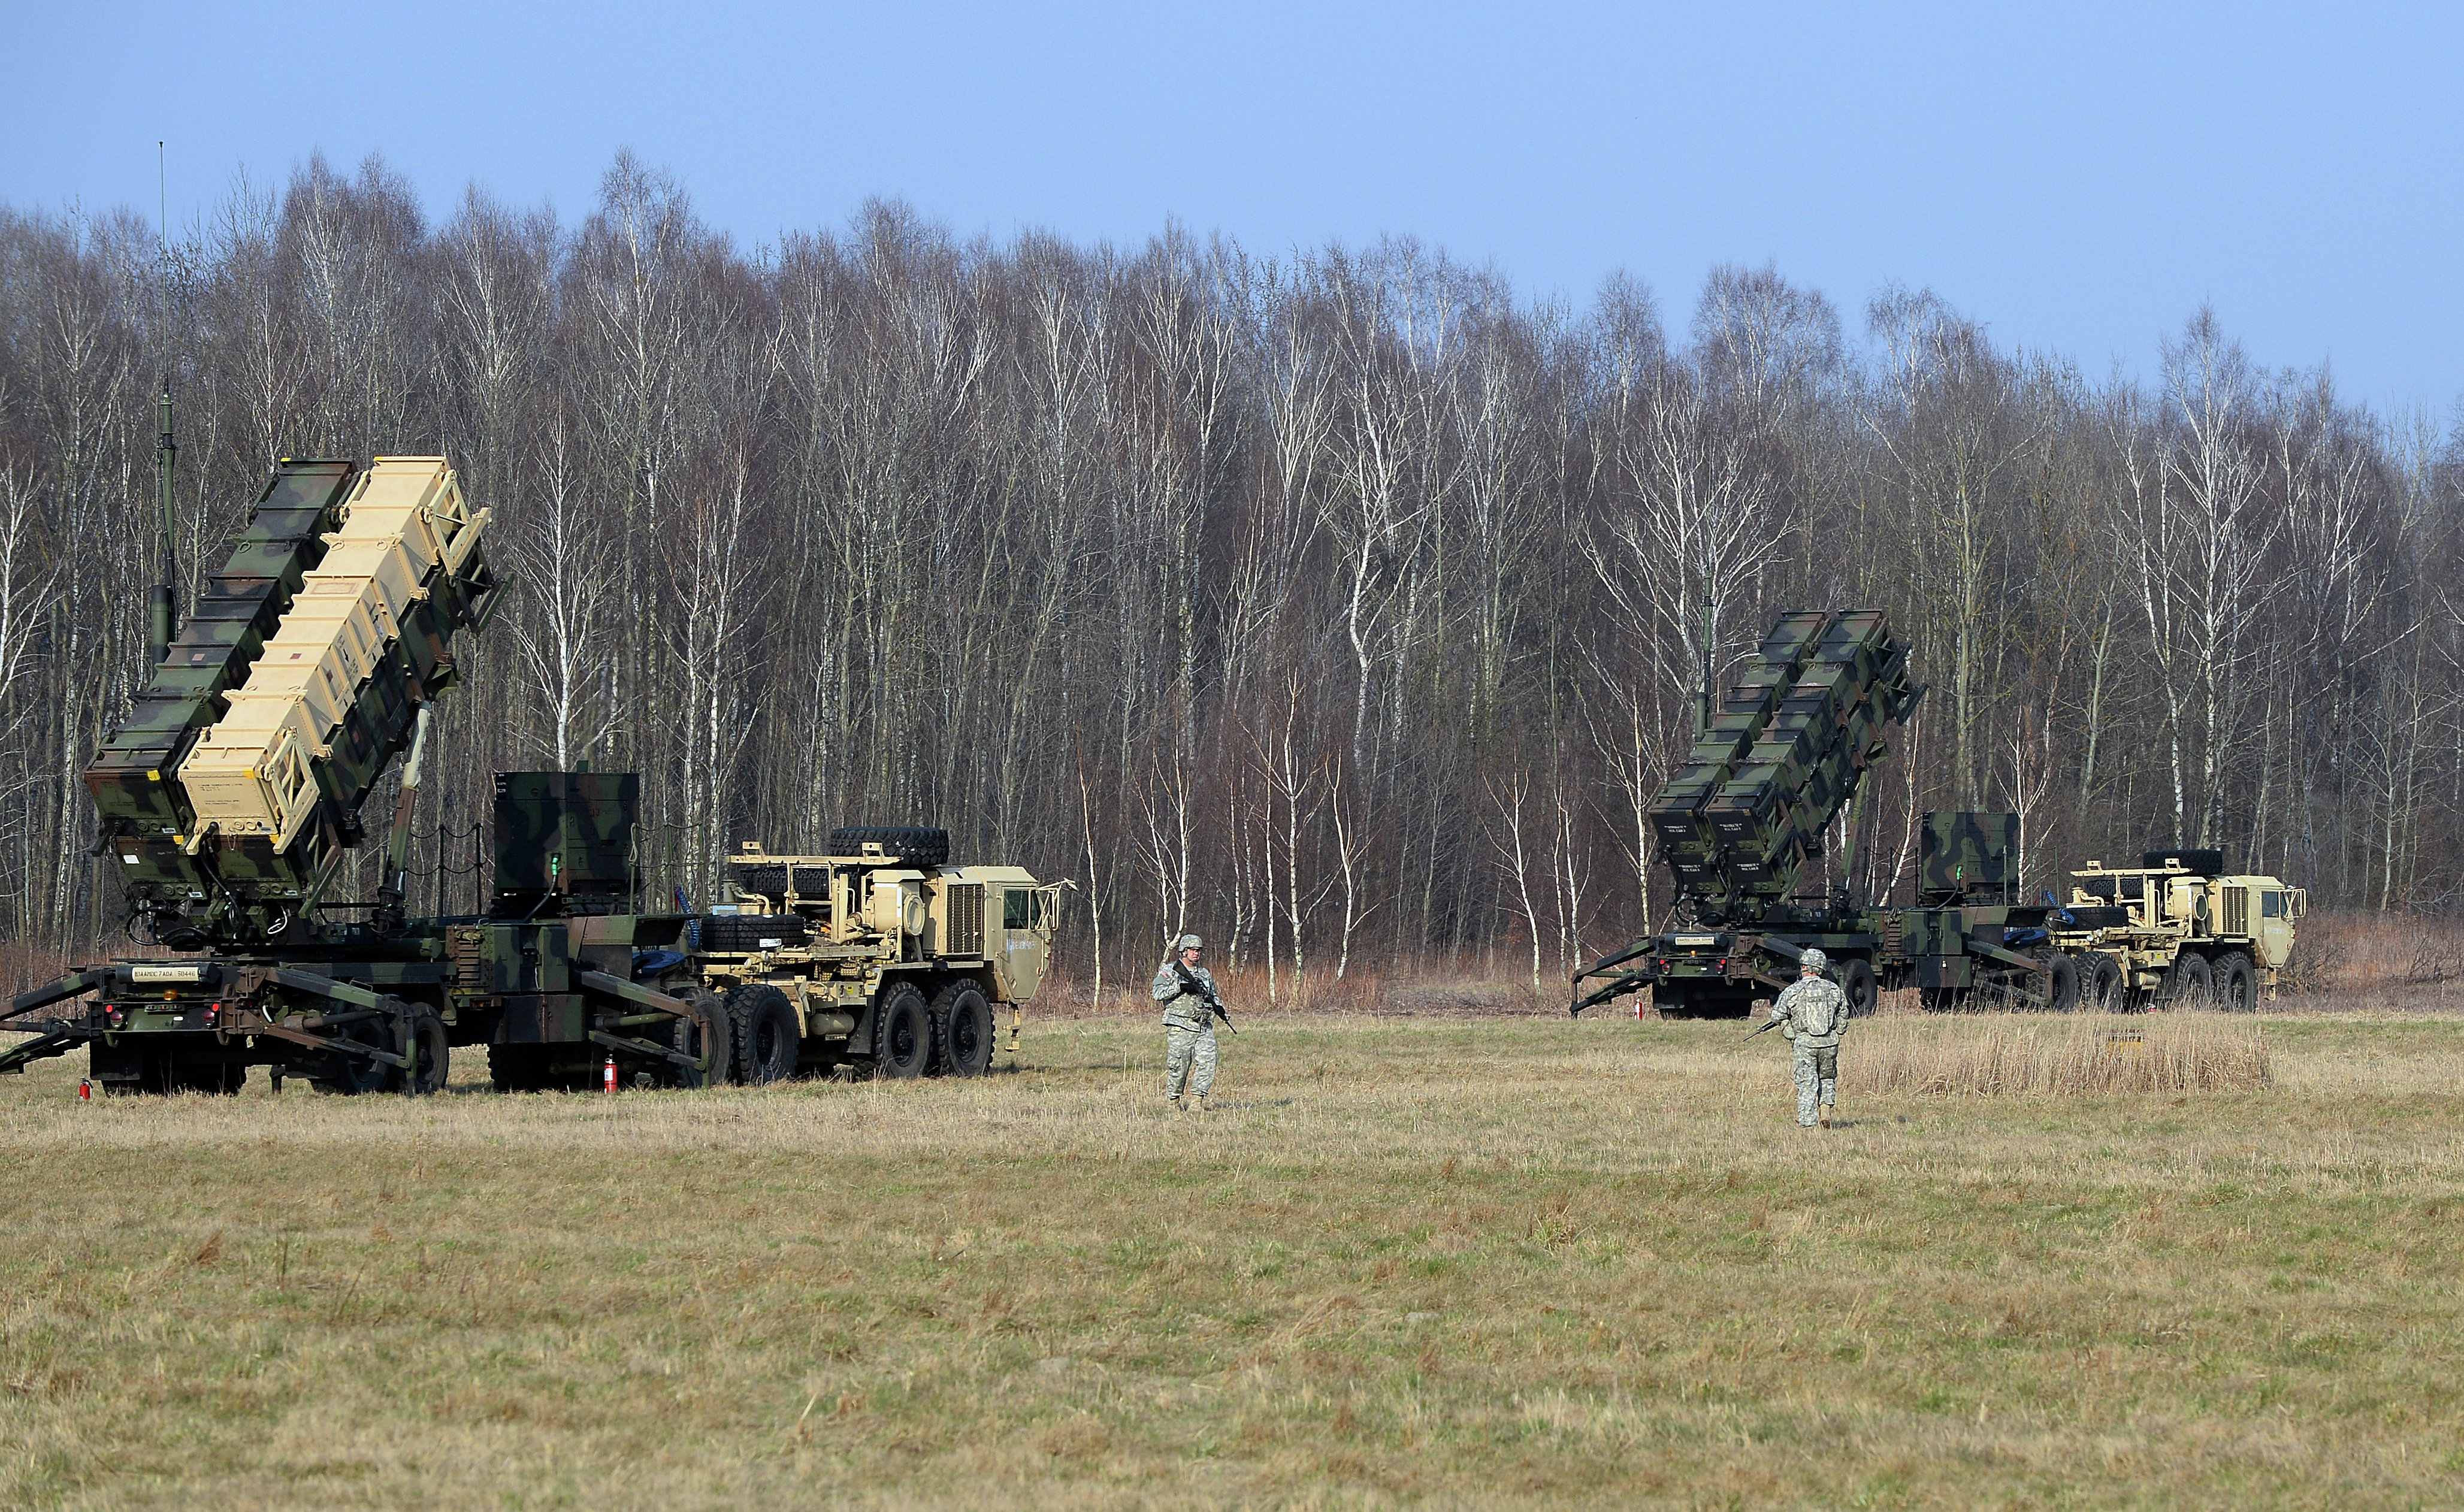 This picture taken on March 21, 2015 shows US troops from the 5th Battalion of the 7th Air Defense Regiment emplace a launching station of the Patriot air and missile defence system at a test range in Sochaczew, Poland